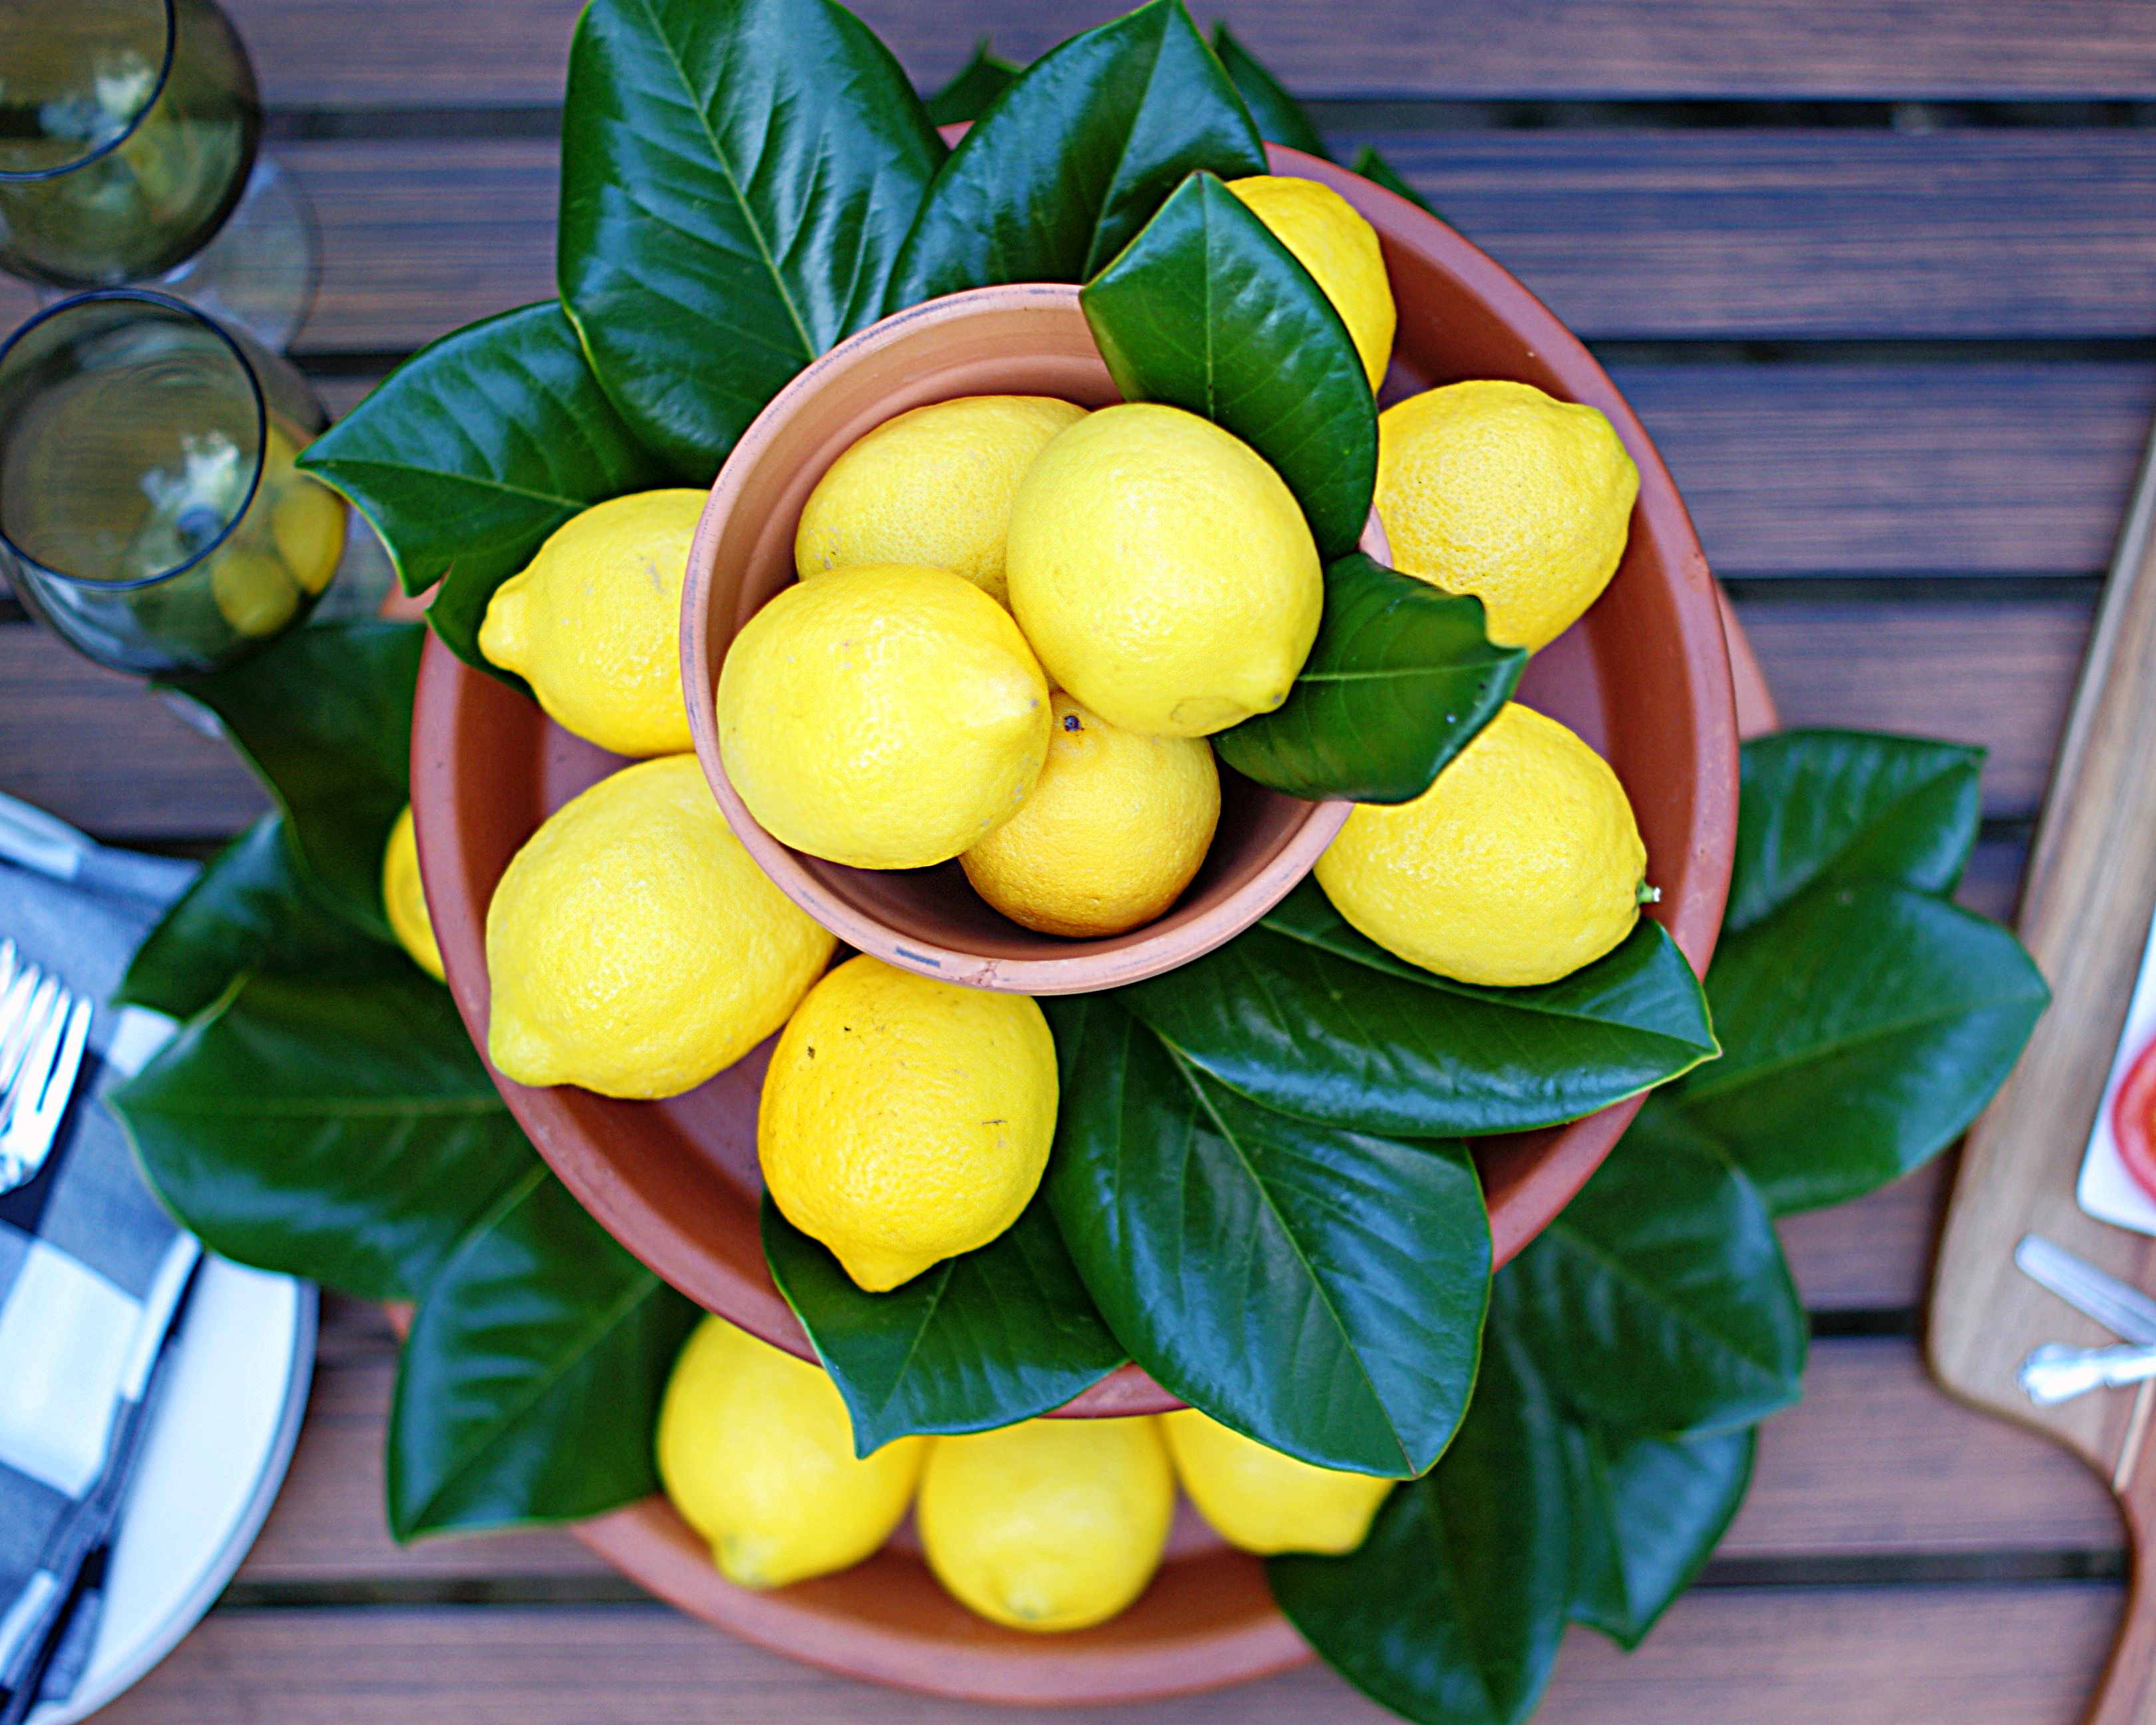 An aerial view Lemon Centerpiece